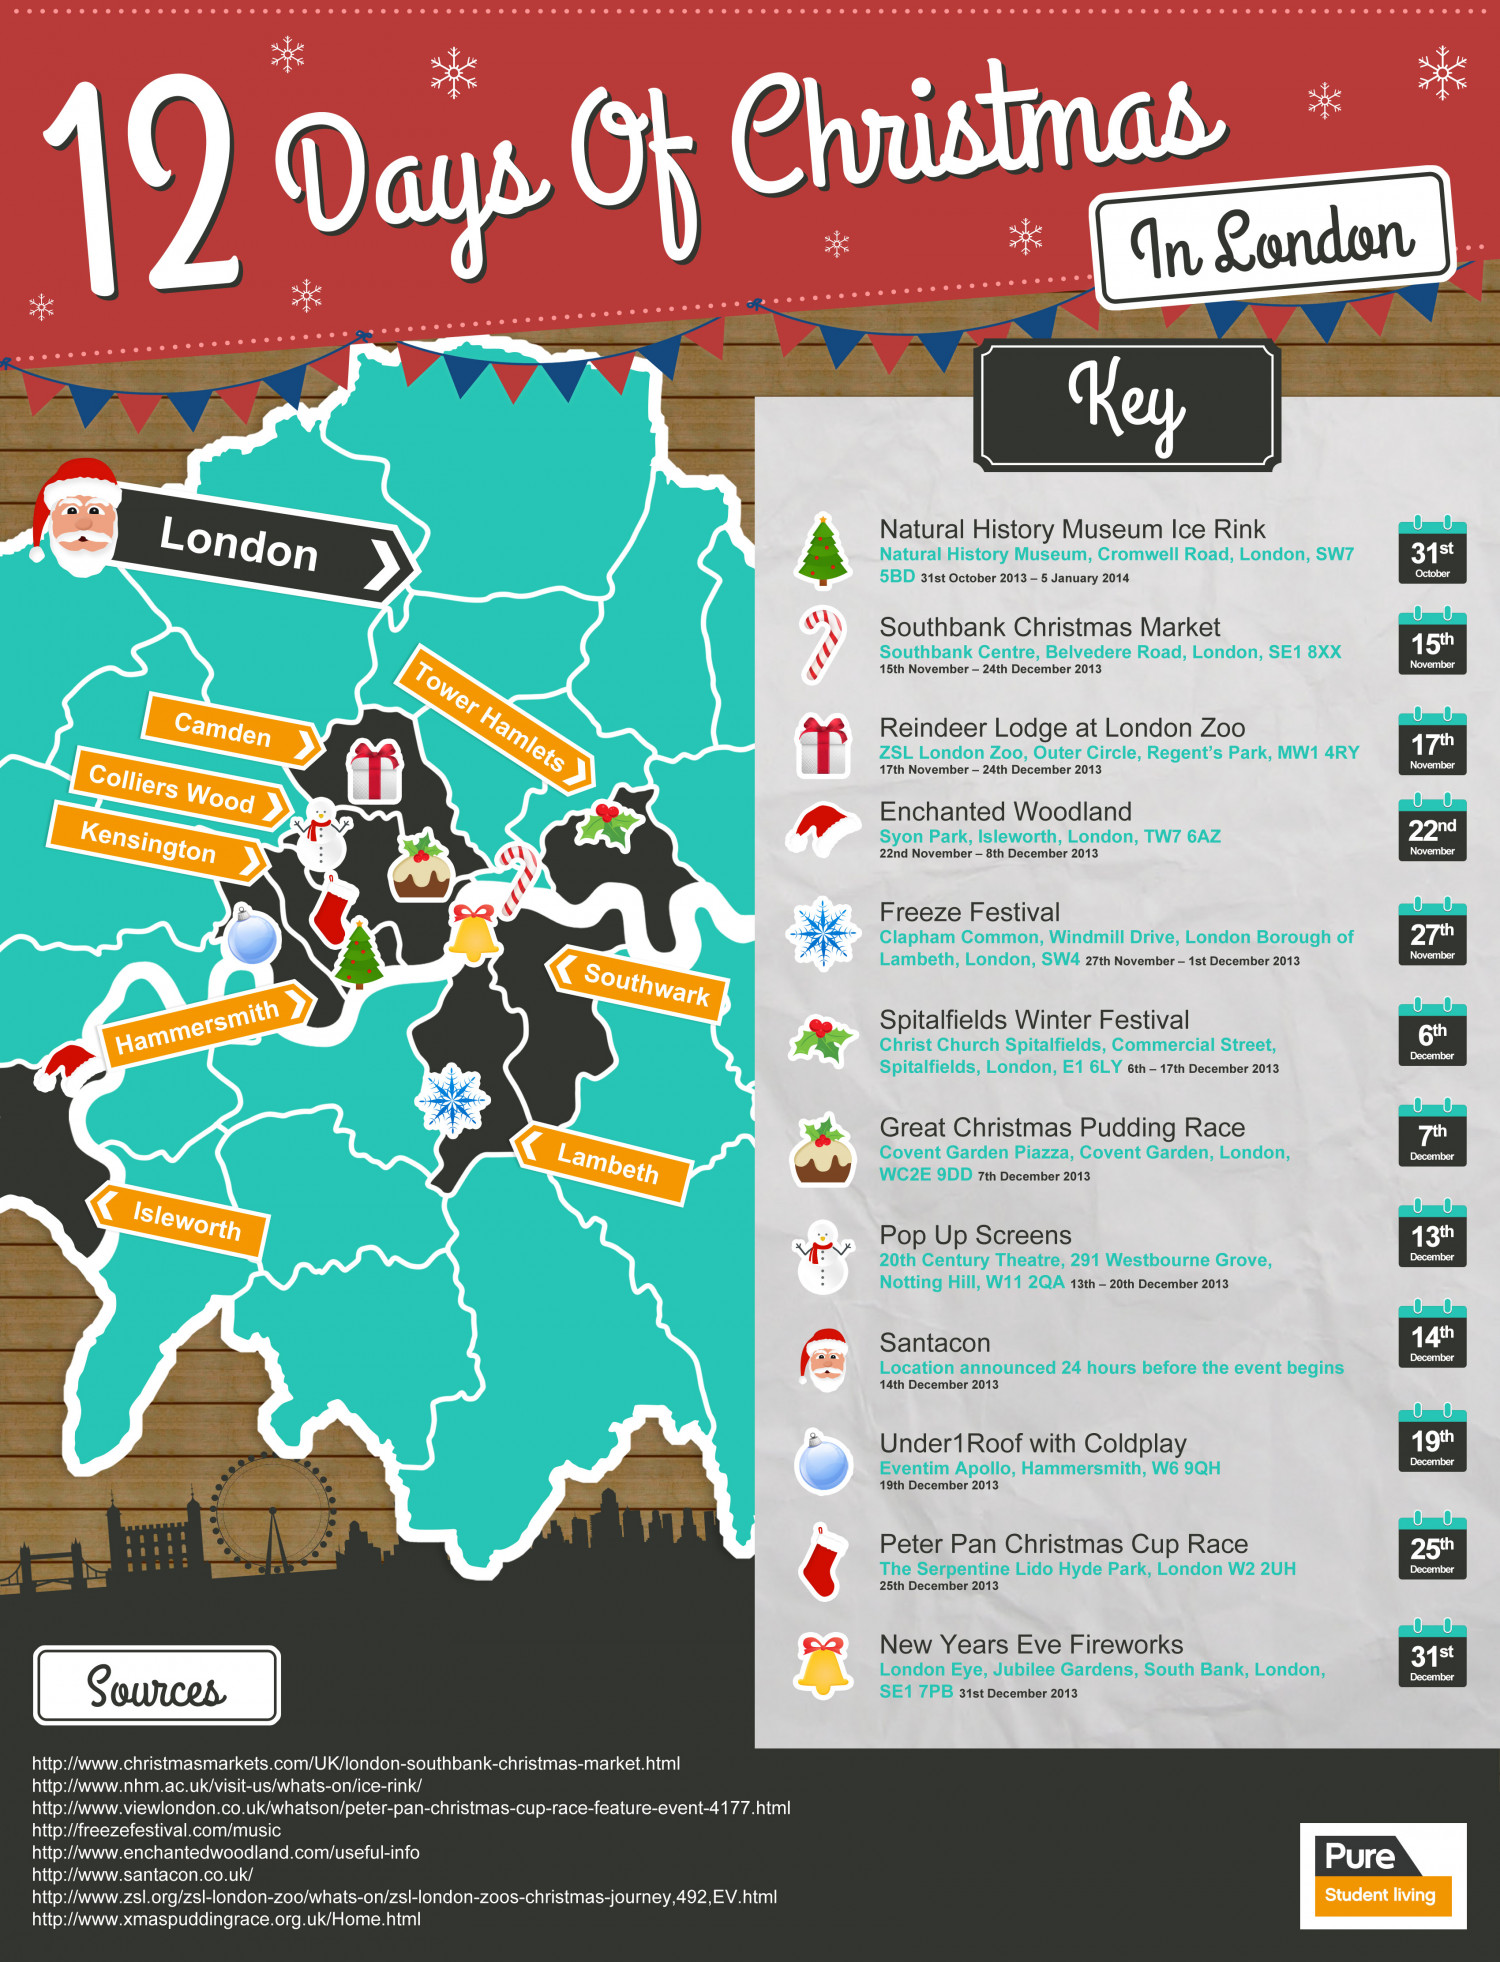 12 Days of Christmas in London | Visual.ly